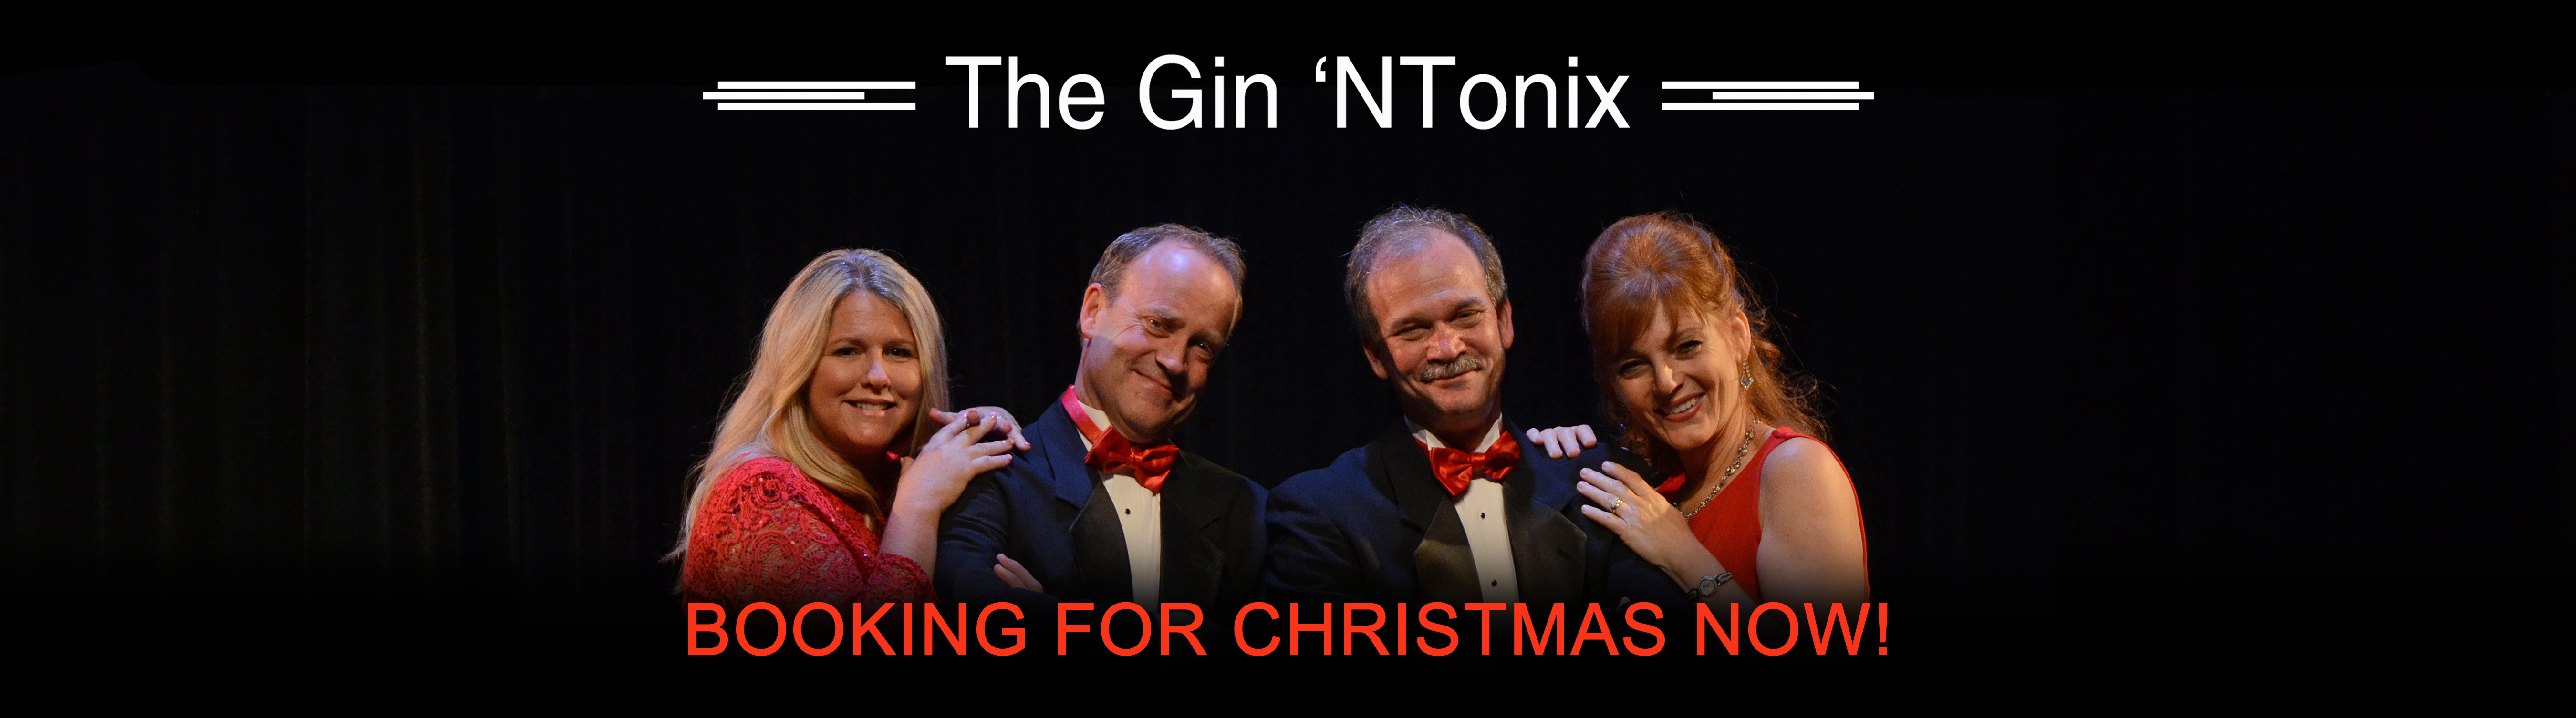 home page GNT Christmas banner